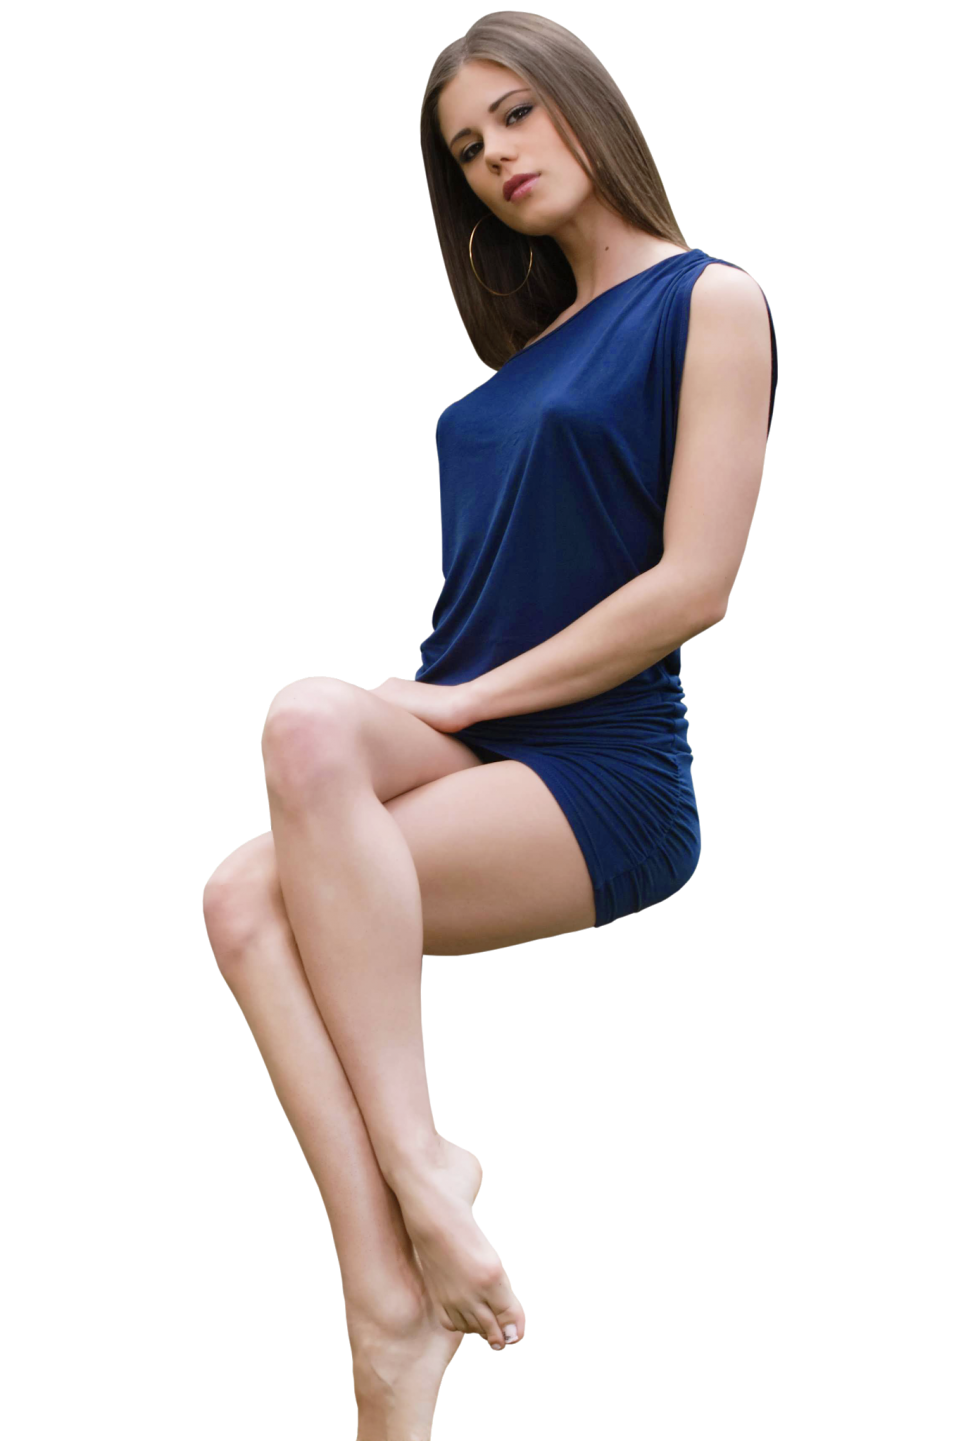 Laying Little Caprice in Blue Dress PNG Image